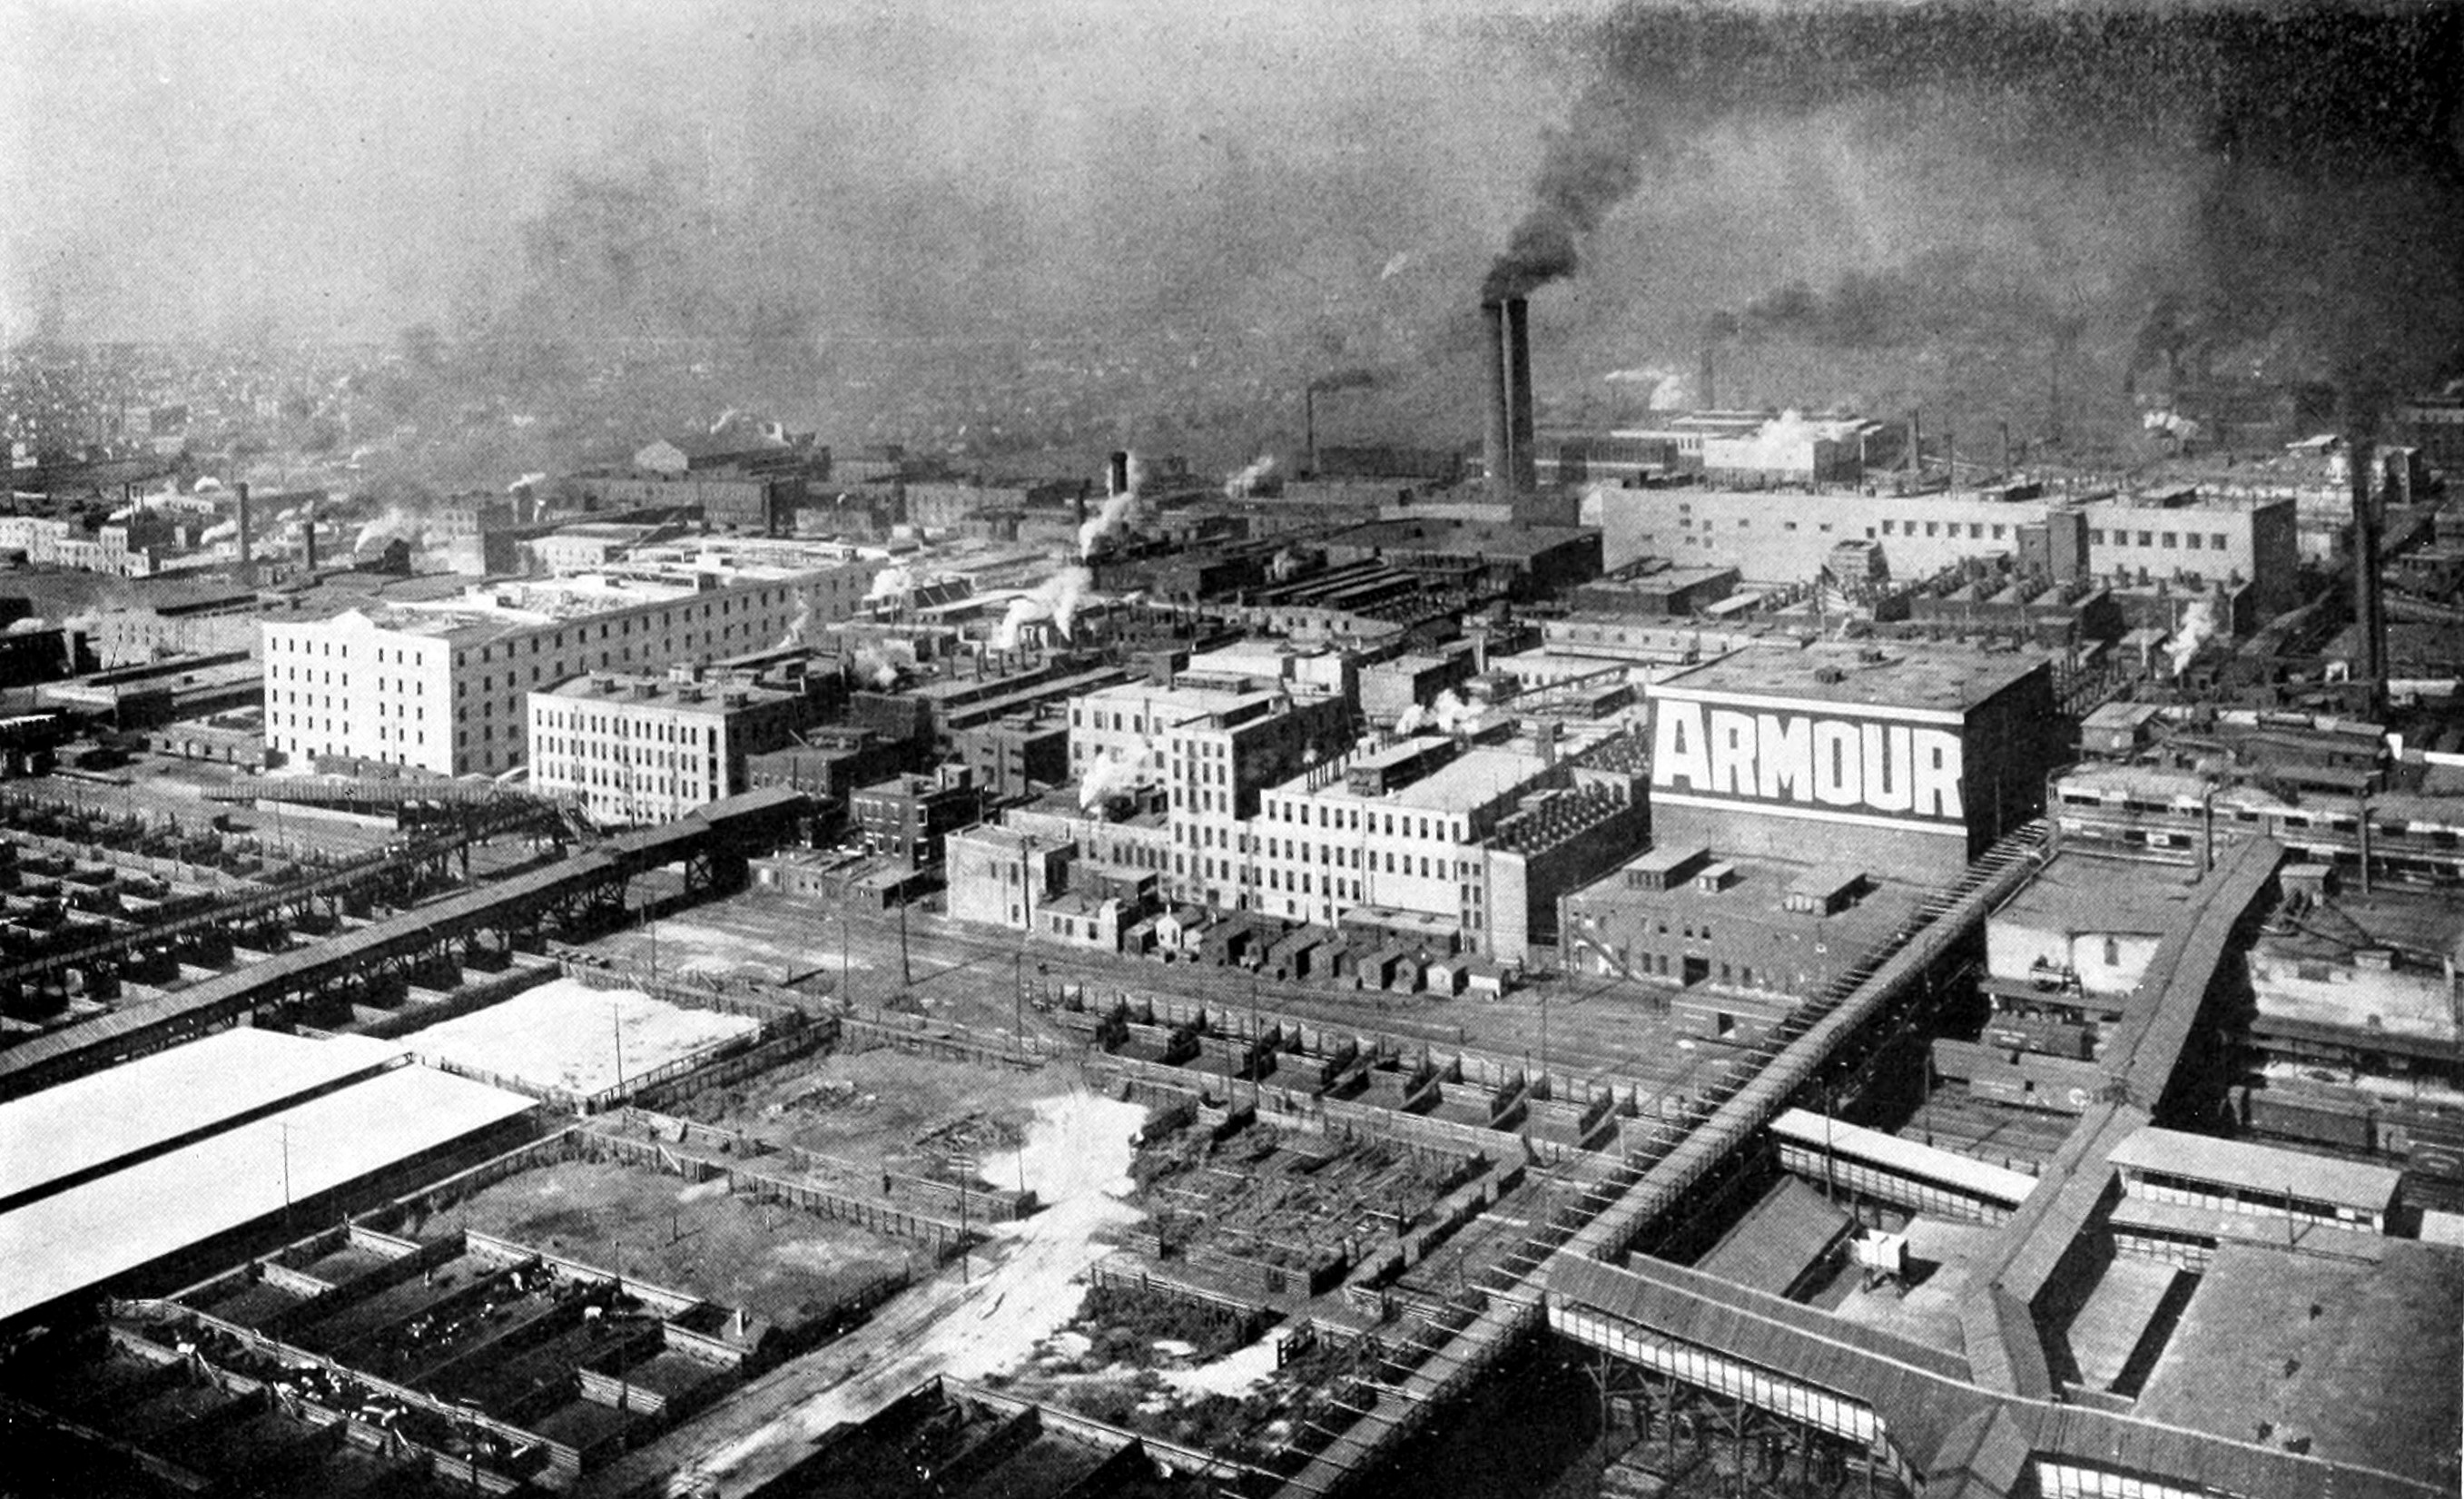 View of Armour's plant and stockyards from a balloon, circa 1910. (Wikimedia)